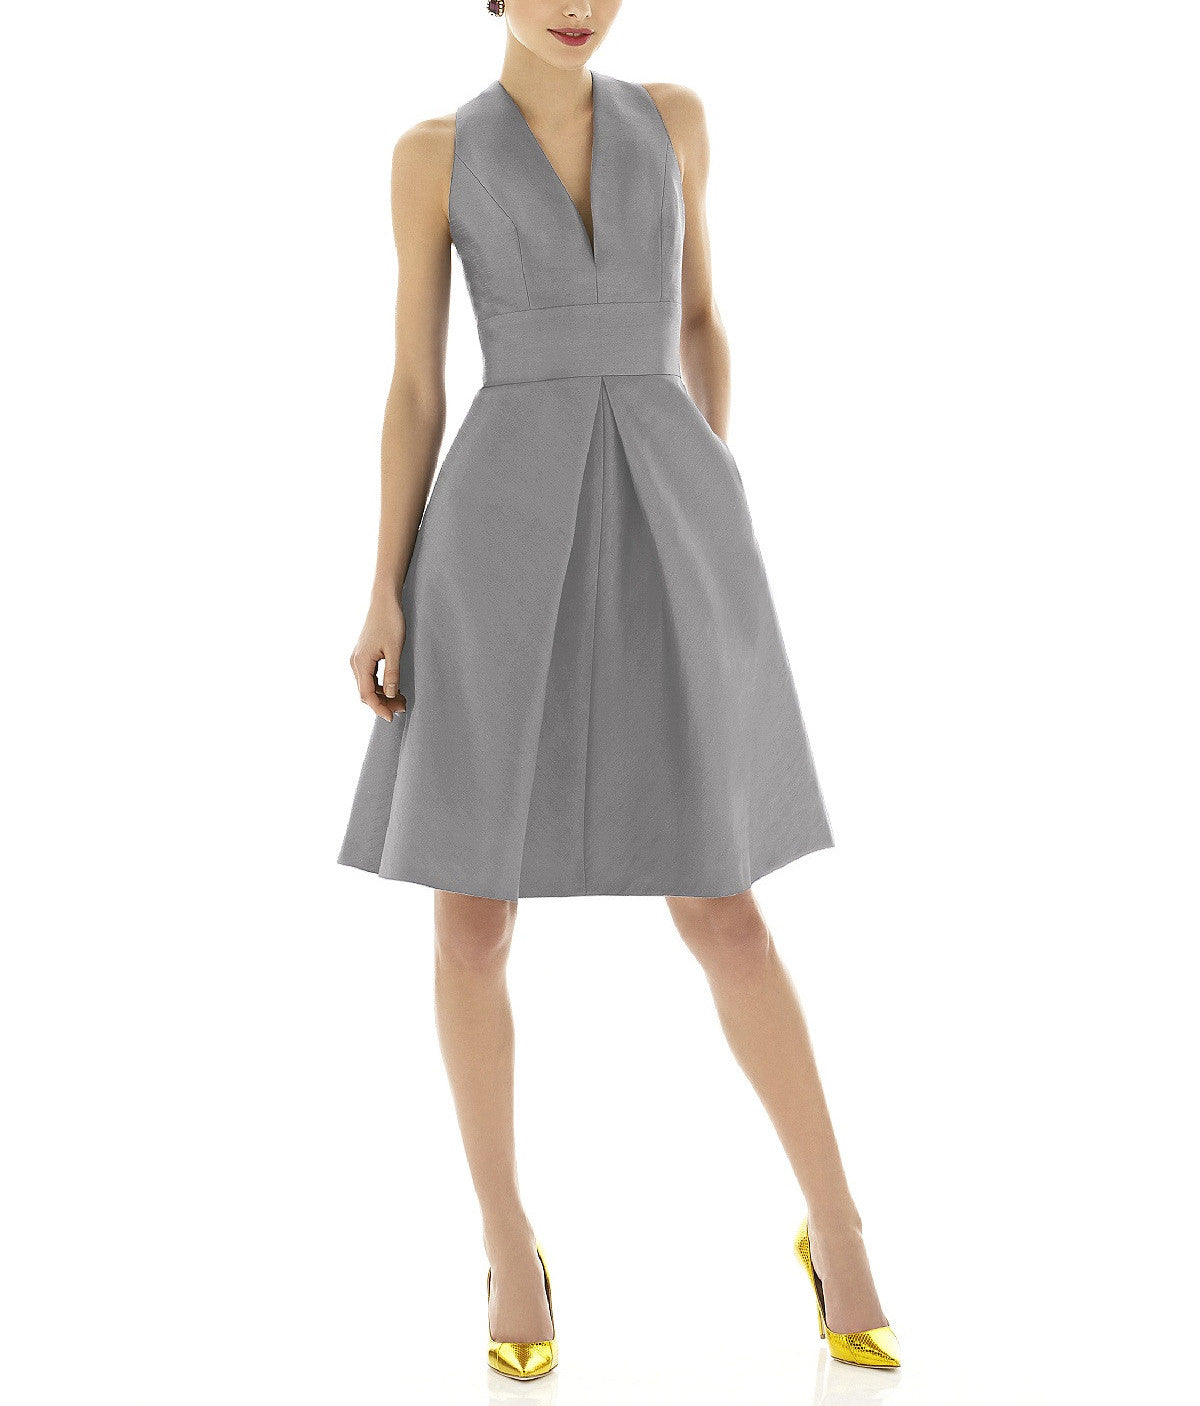 Size 12 Quarry Dessy Womens Cocktail Length V-Neck Dupioni Dress with Inset Waistband